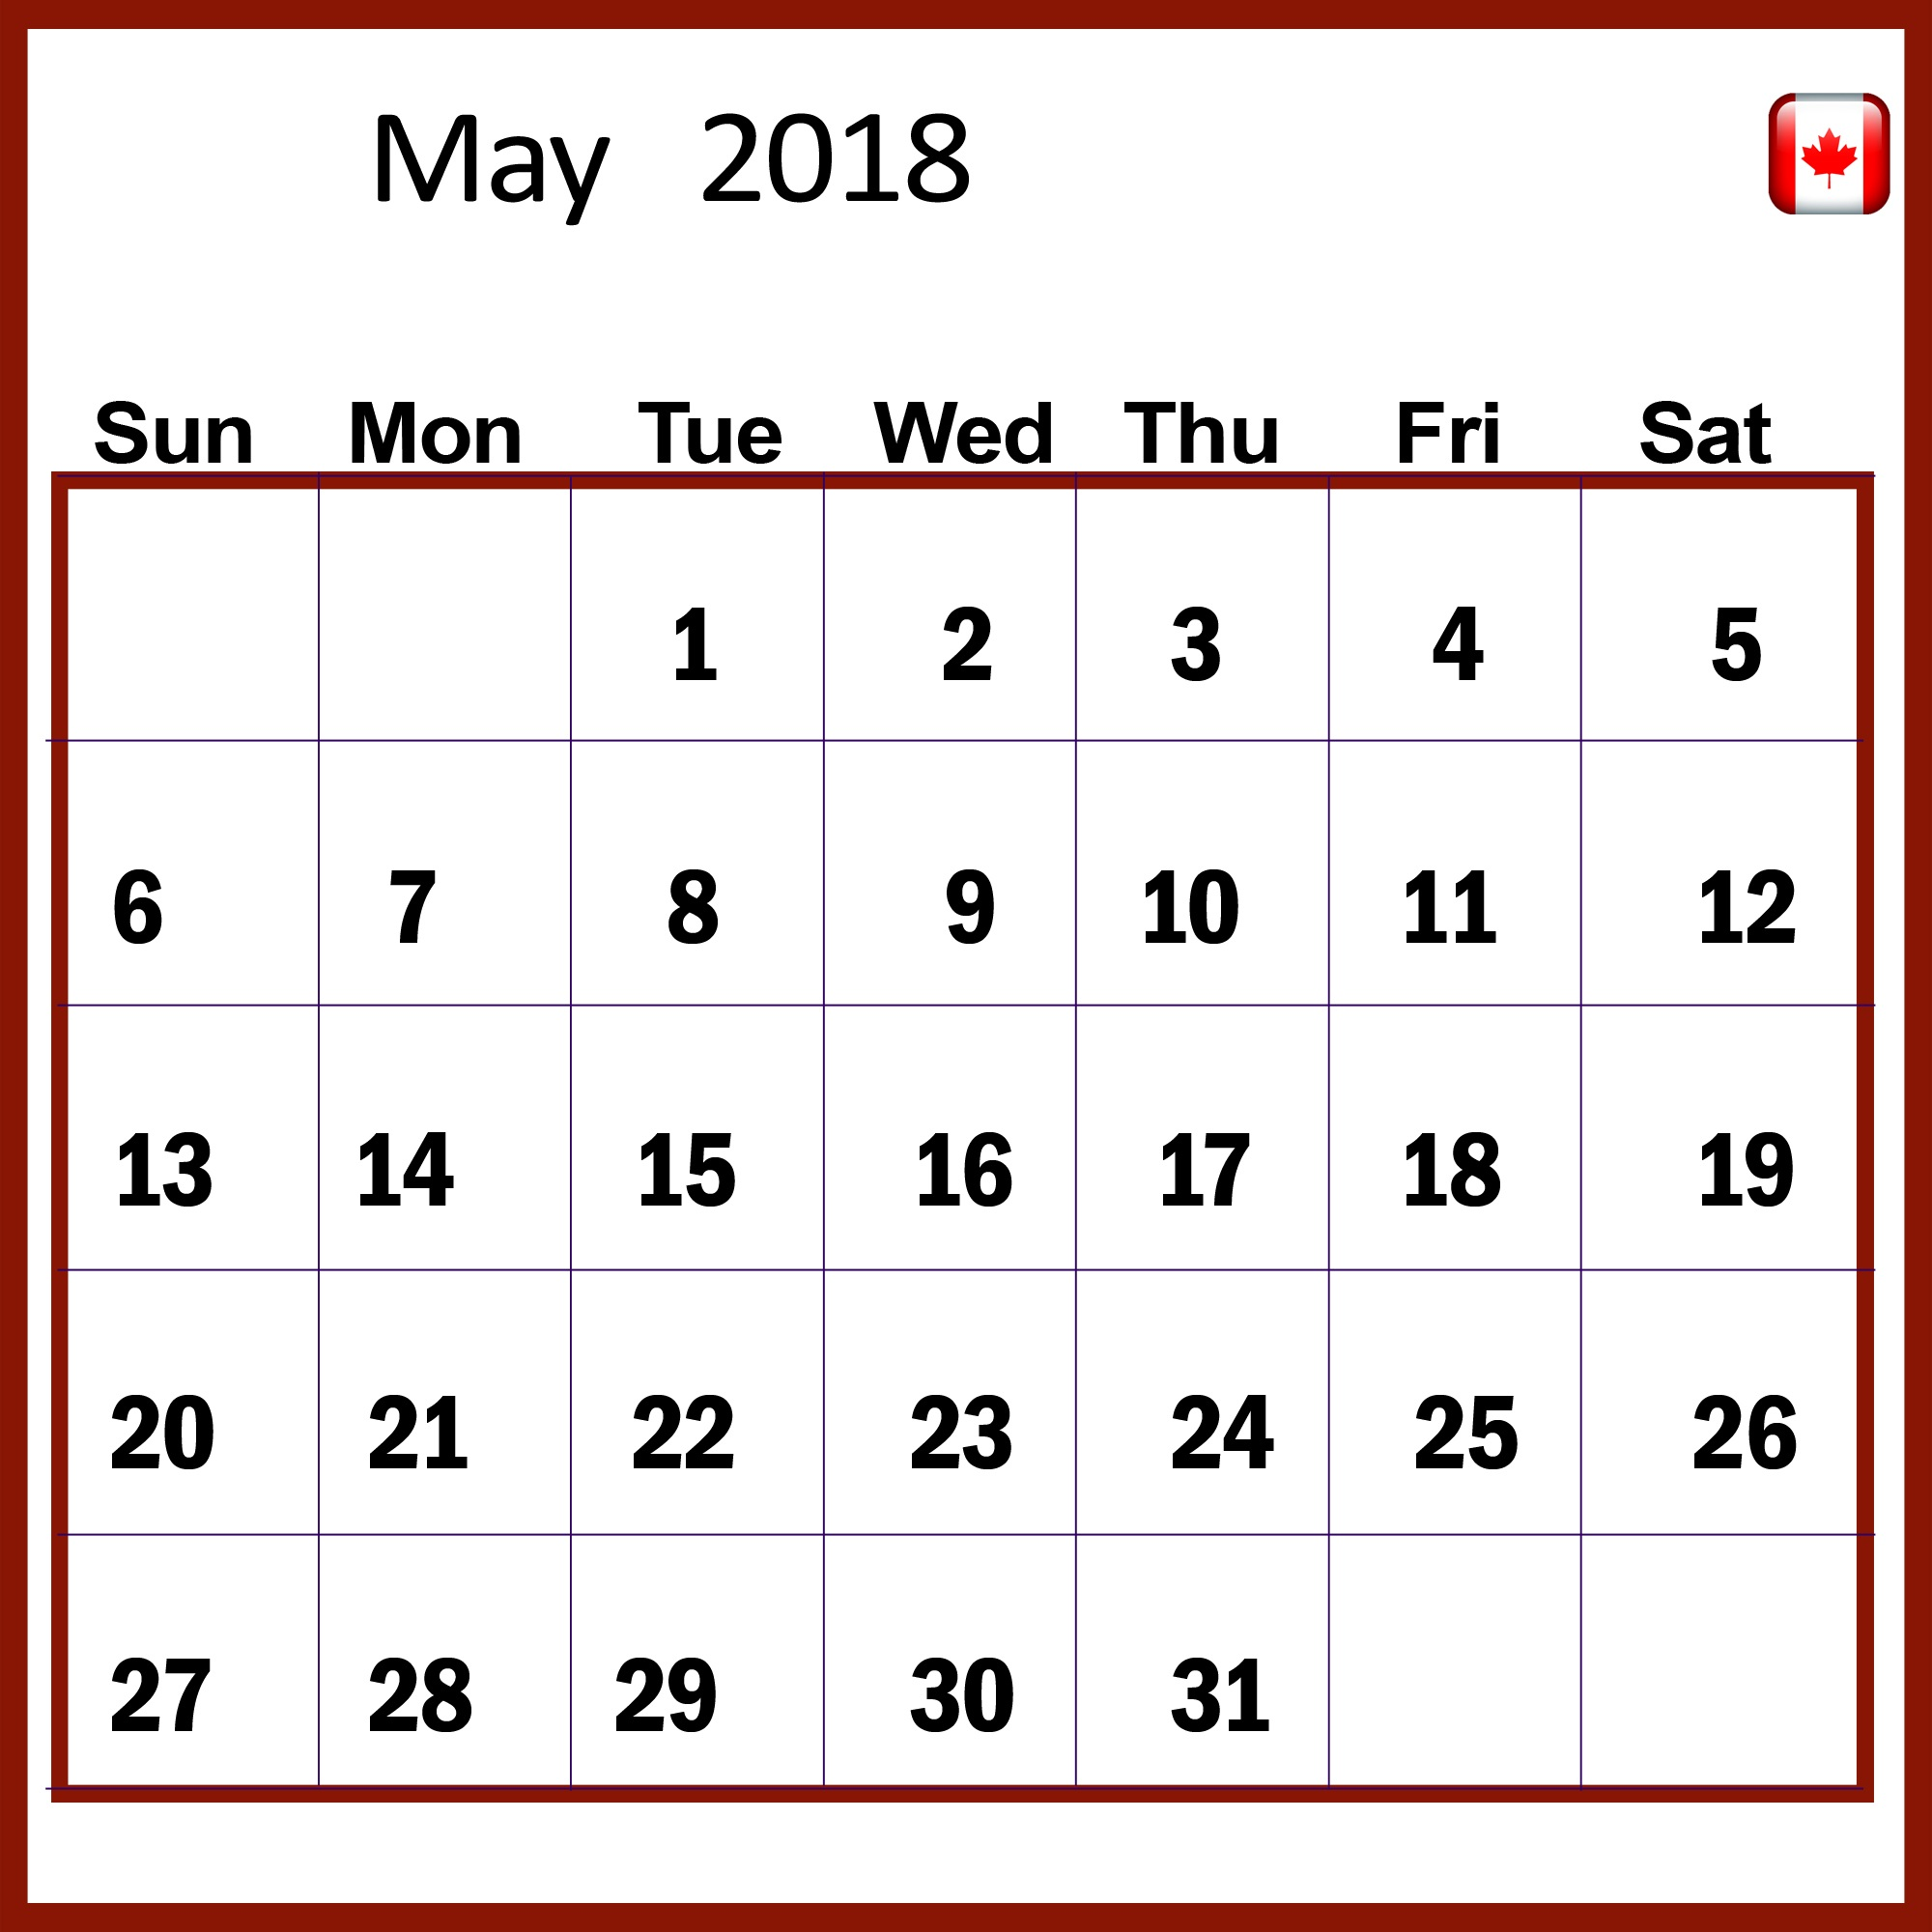 May 2018 Calendar Canada Public National Bank Holidays